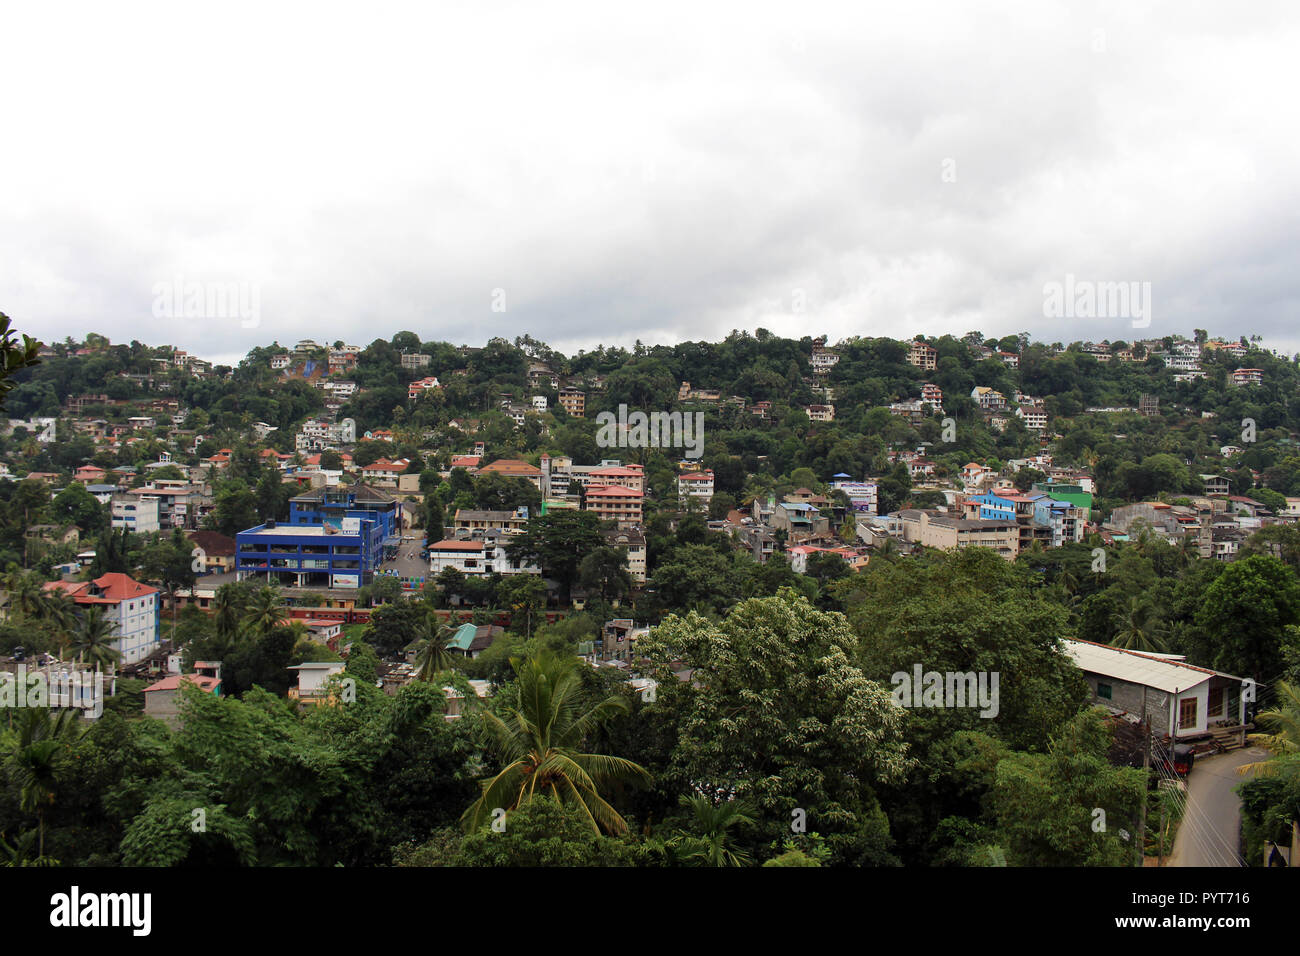 Translation: Around Kandy hill in the cloudy morning and a train passing by. Taken in Sri Lanka, August 2018. Stock Photo